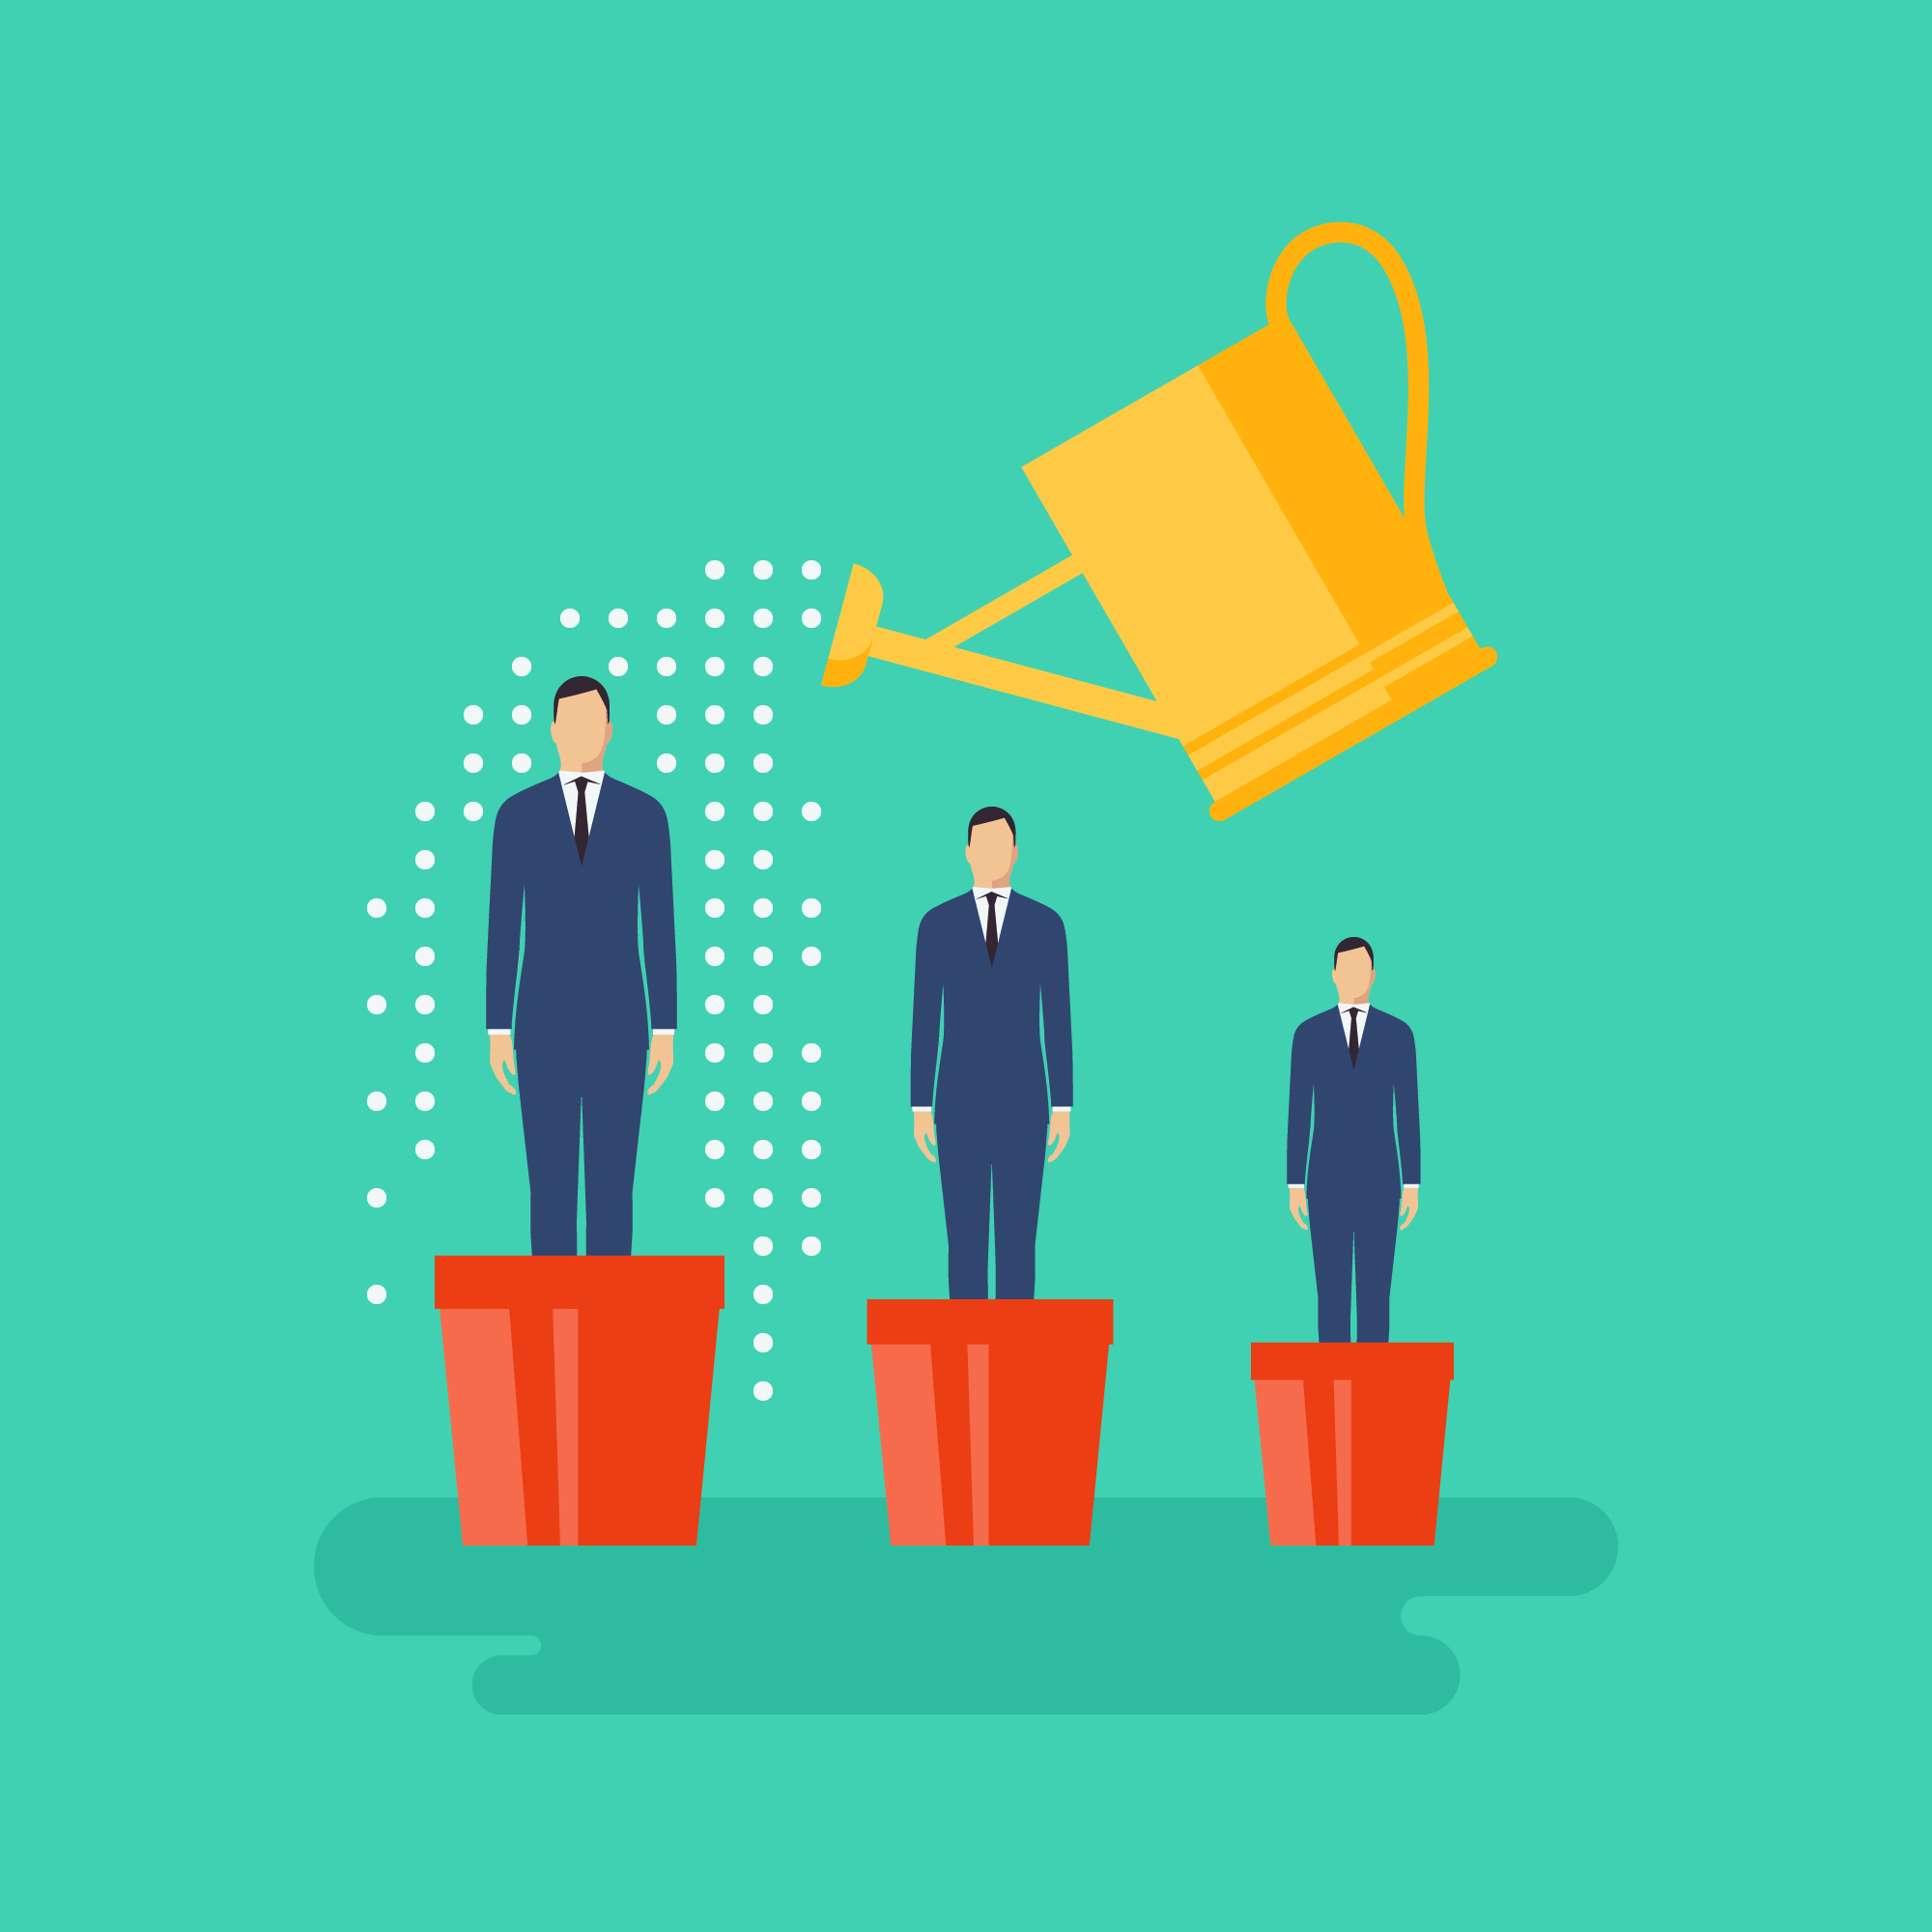 3 Talent Management Consulting Tips to Keep Top Talent Performing